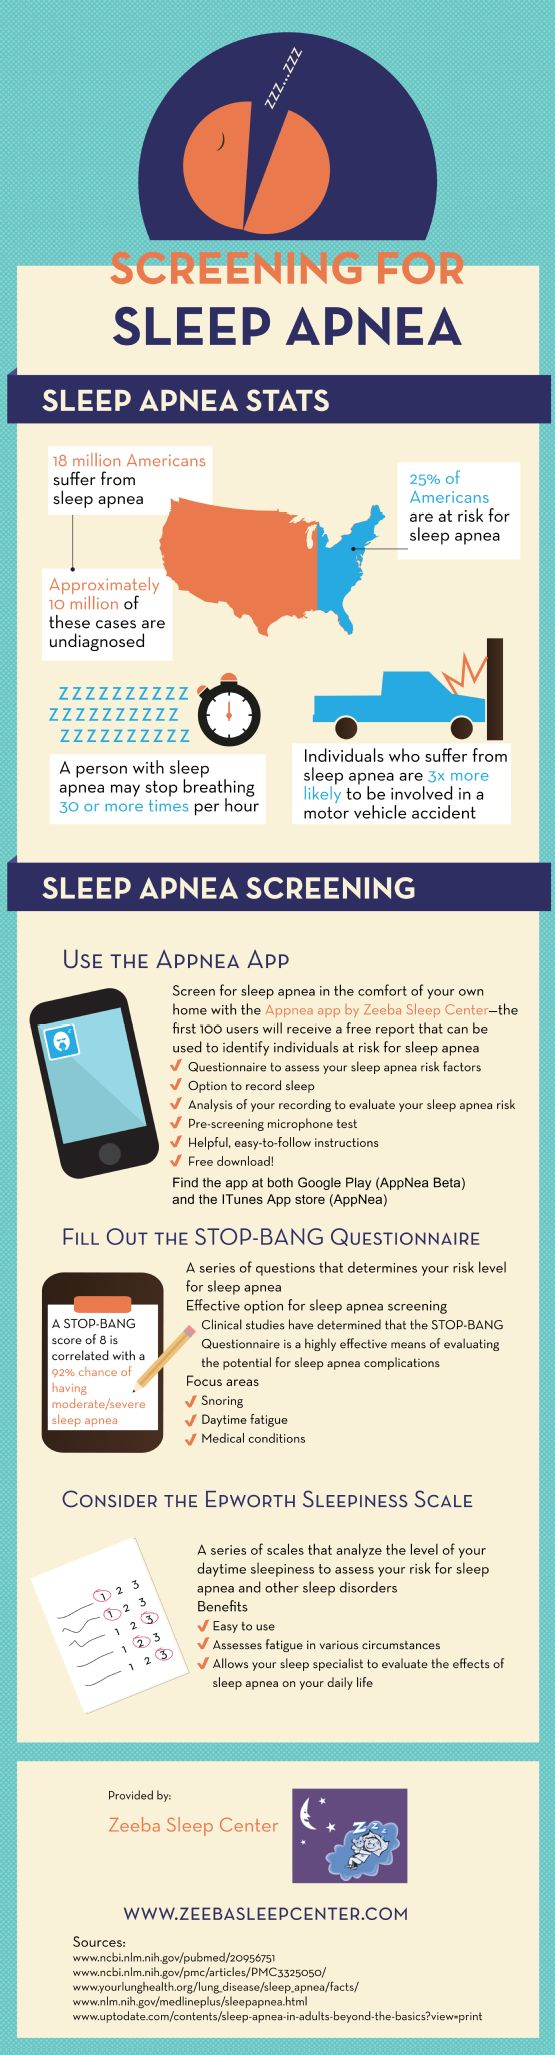 Did you know that people who suffer from sleep apnea may stop breathing 30 or more times per hour during sleep? Find more surprising facts about sleep apnea on this infographic from a specialist in Las Vegas.